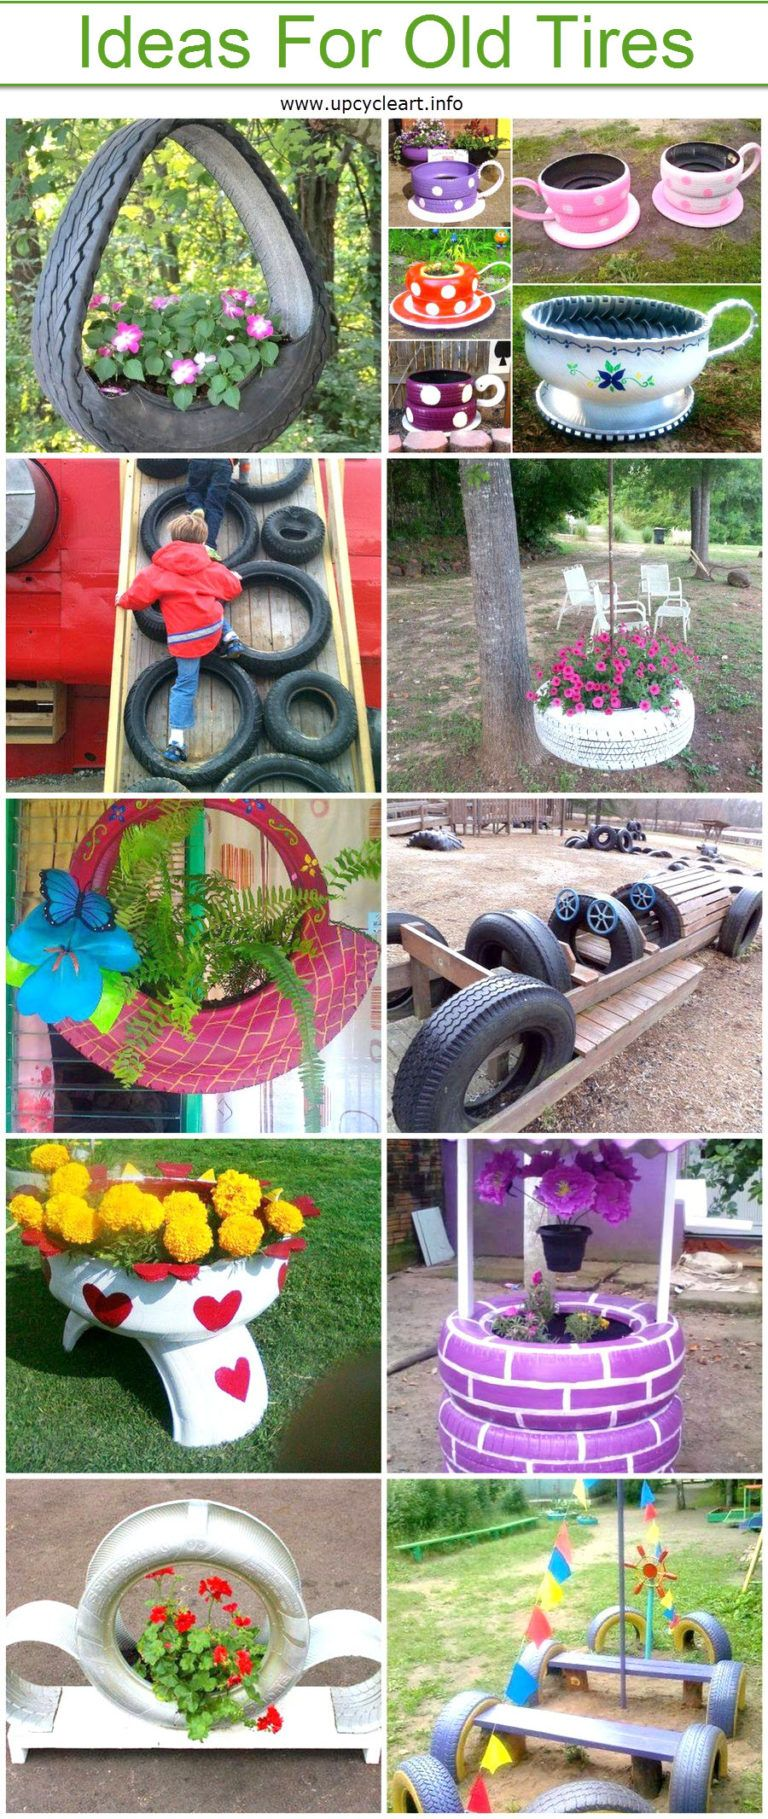 Diy Crafting Ideas For Old Tires Upcycle Art Repurposed Tires Diy Projects Diy Yard Decor Old Tires